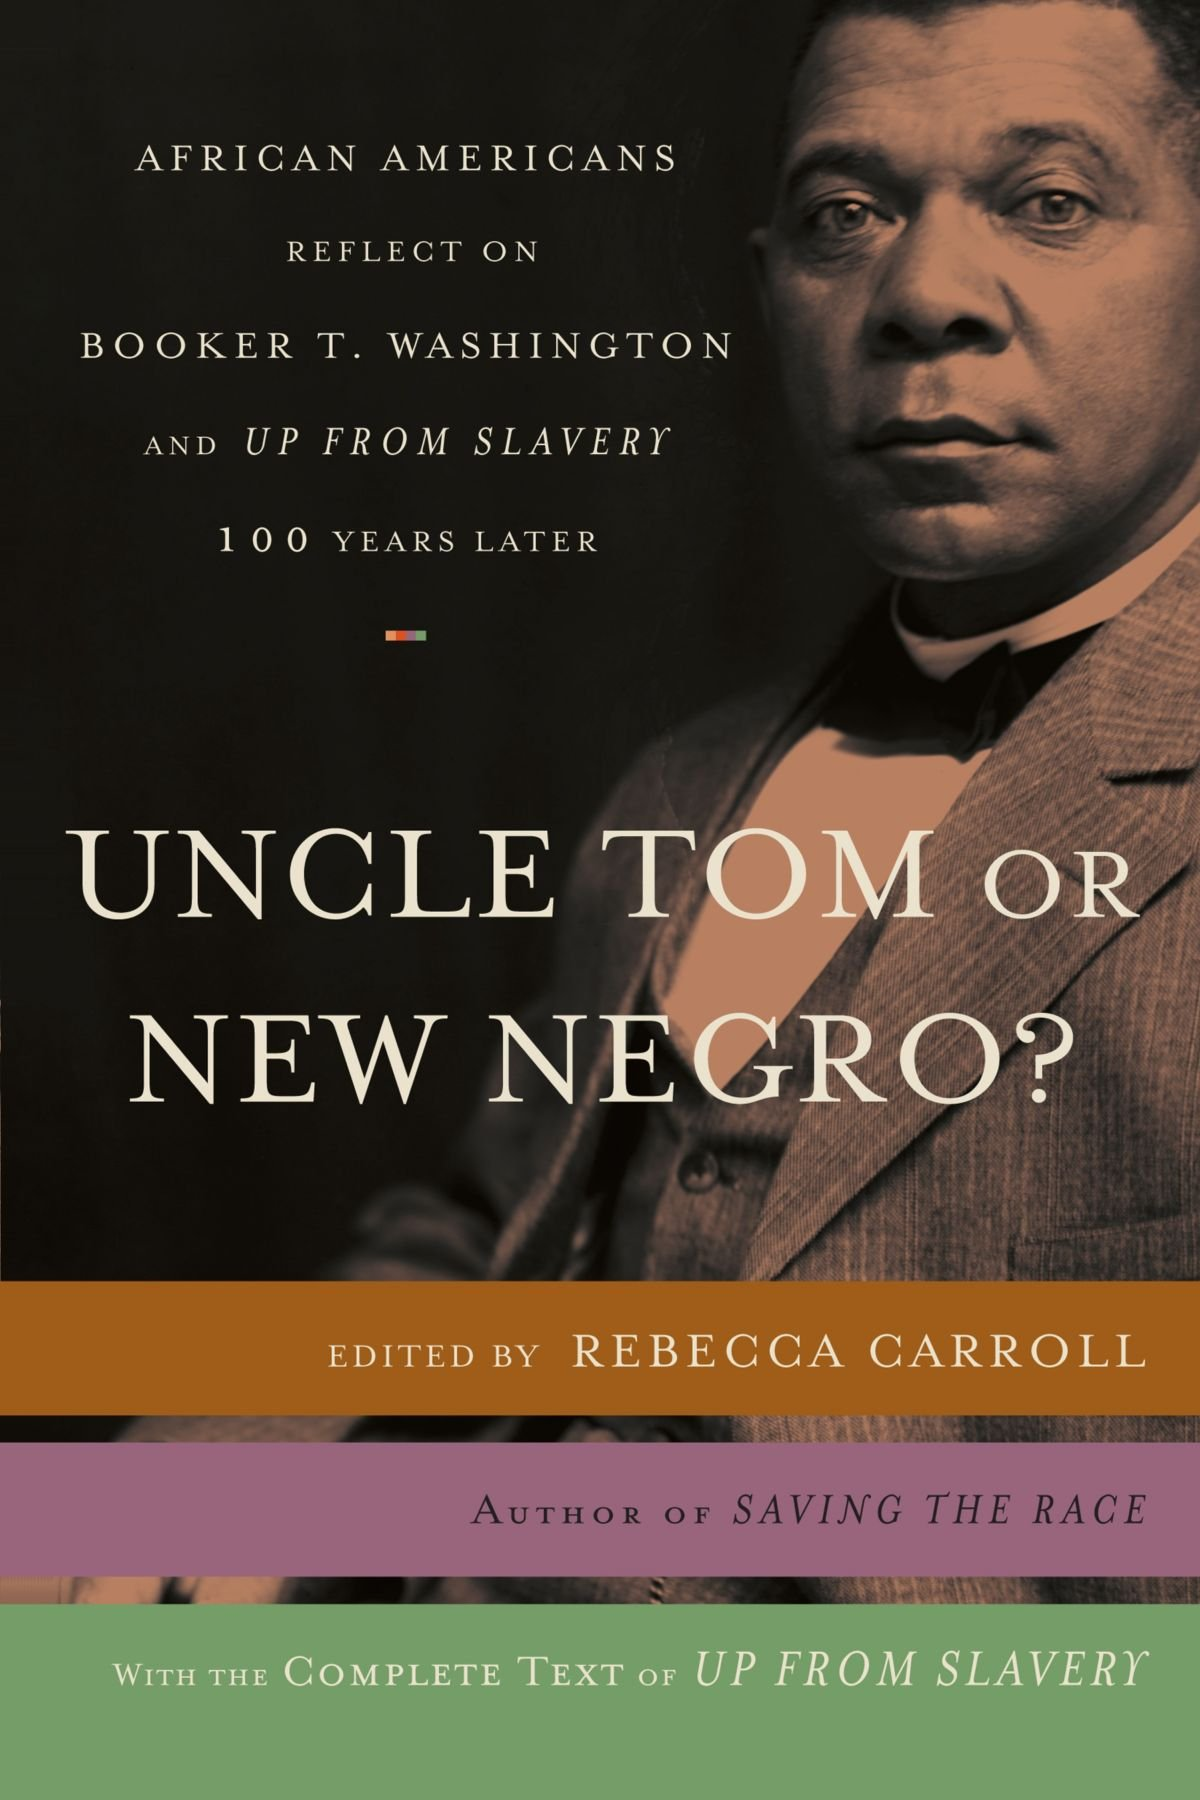 Read Online Uncle Tom or New Negro?: African Americans Reflect on Booker T. Washington and UP FROM SLAVERY 100 Years Later pdf